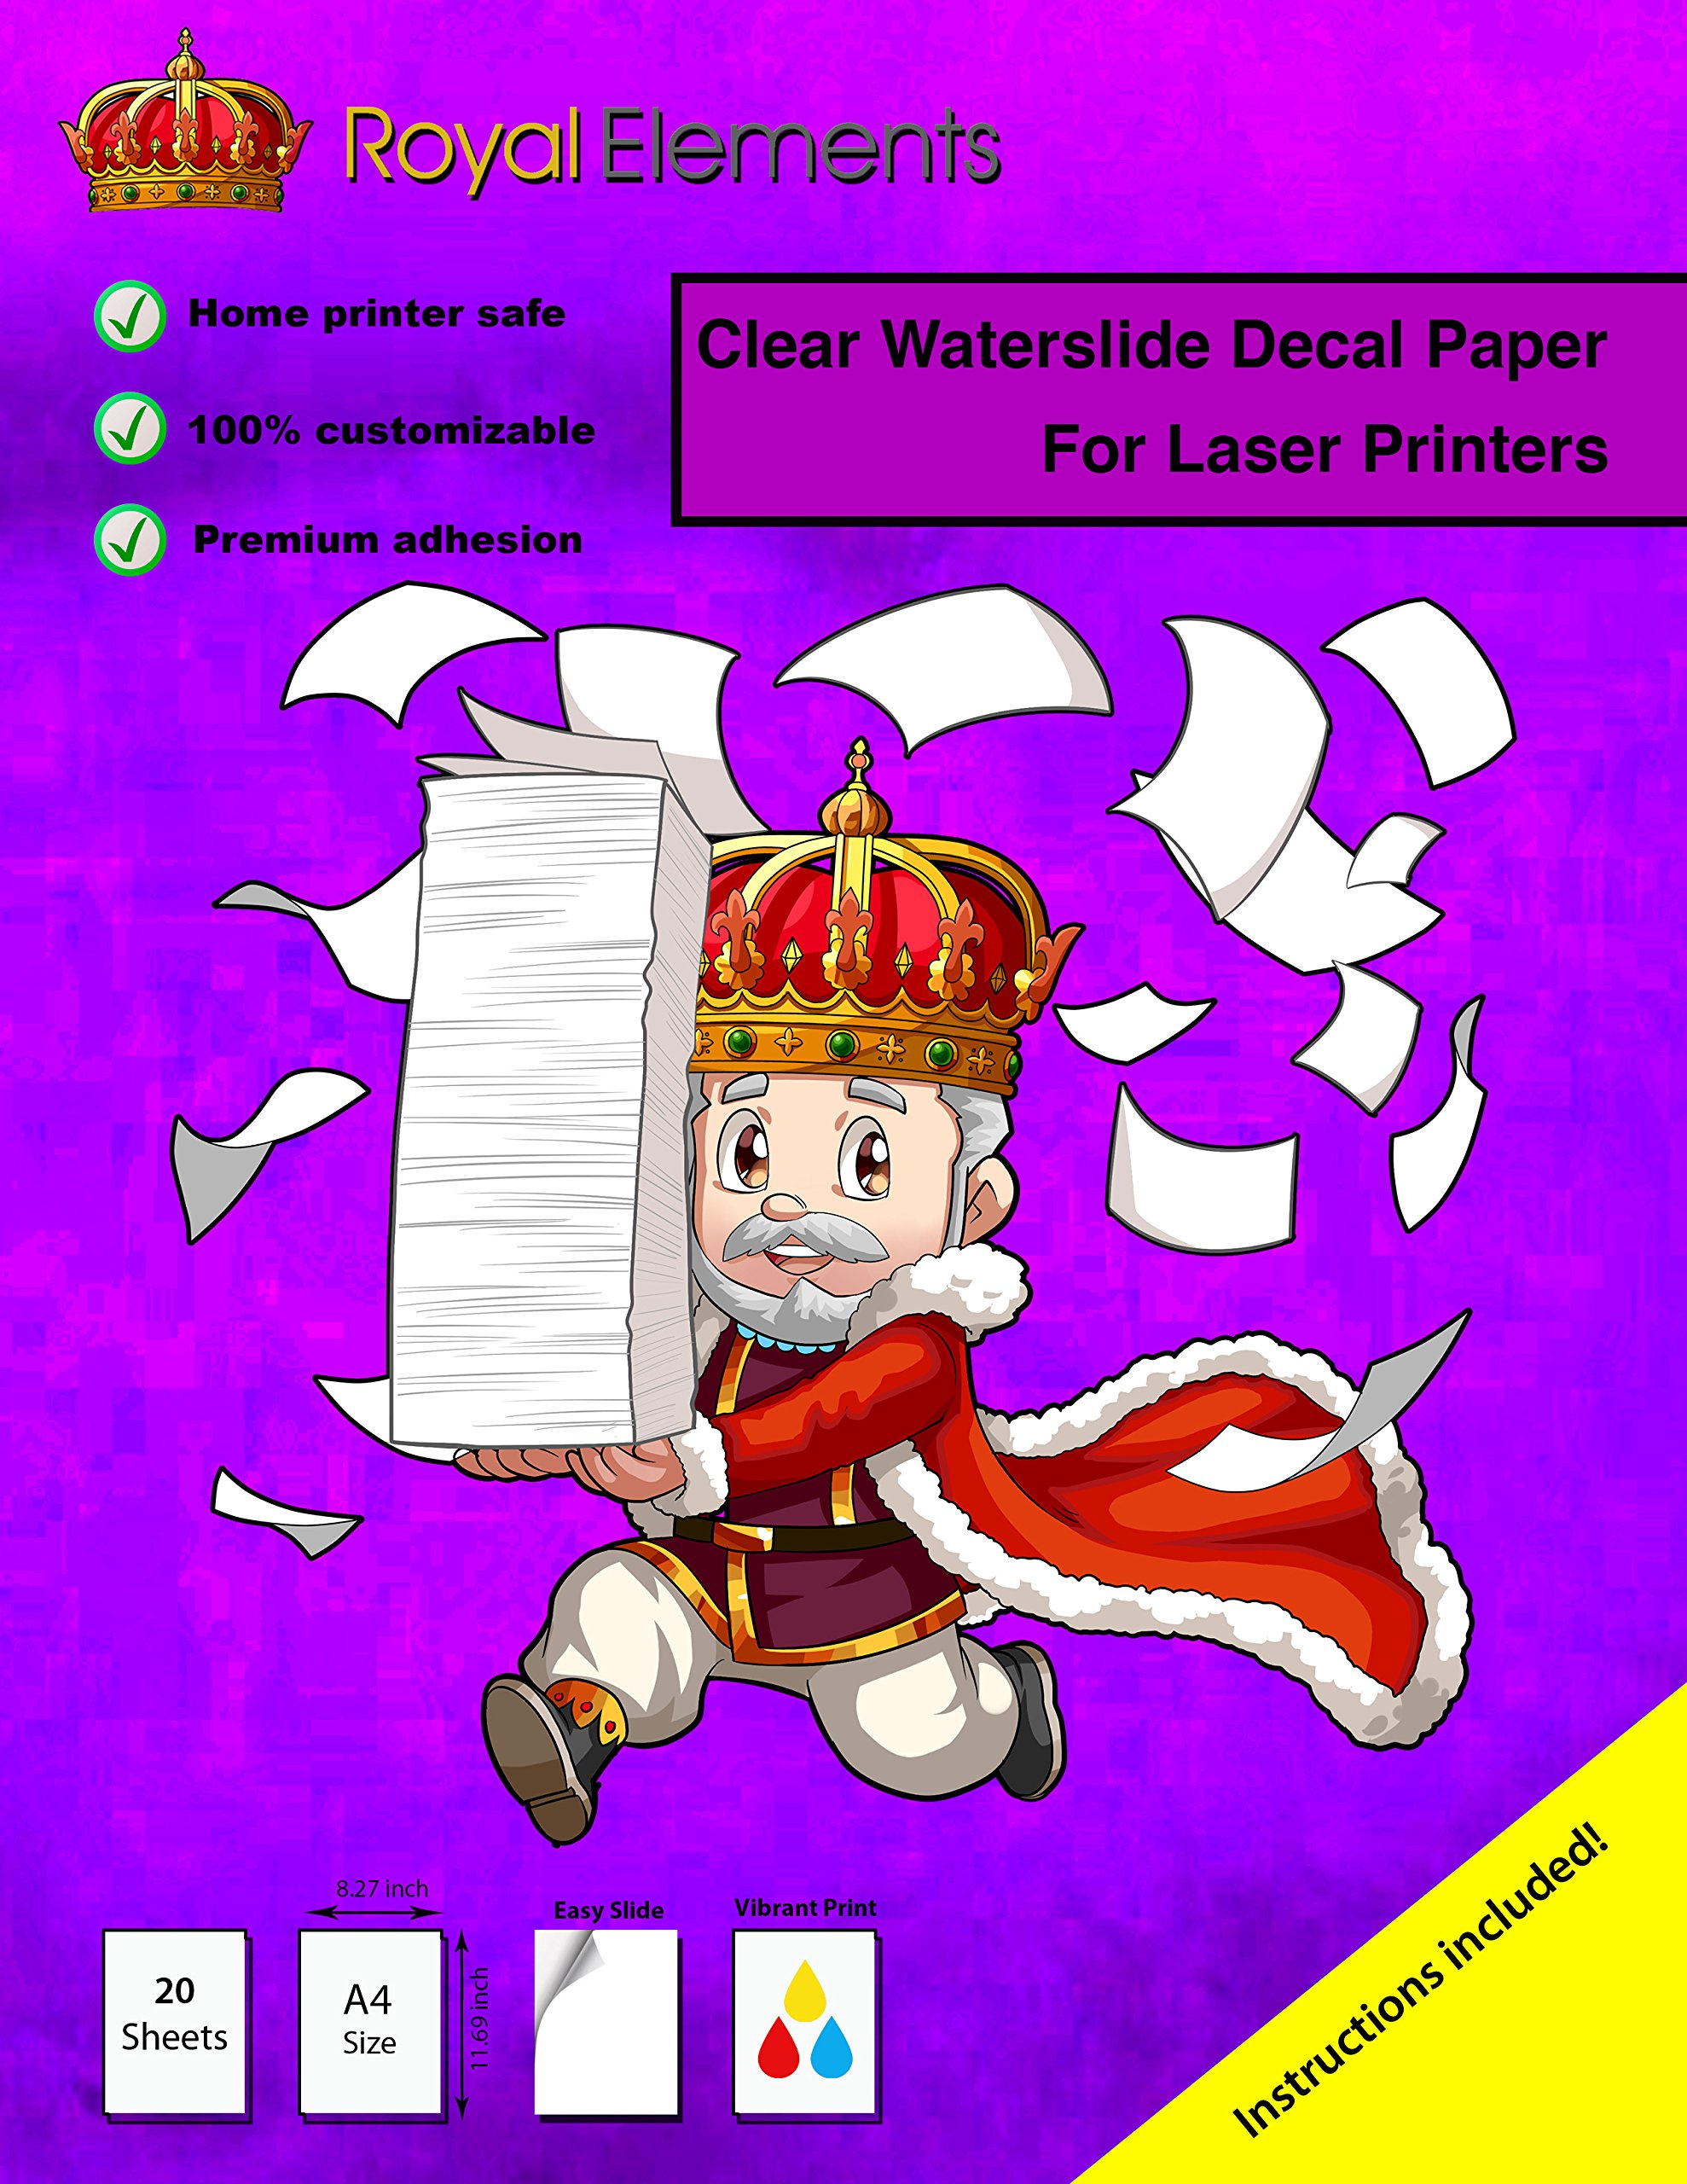 Royal Elements Waterslide Decal Paper - Clear for Laser Printers - 20 Sheets by Royal Elements